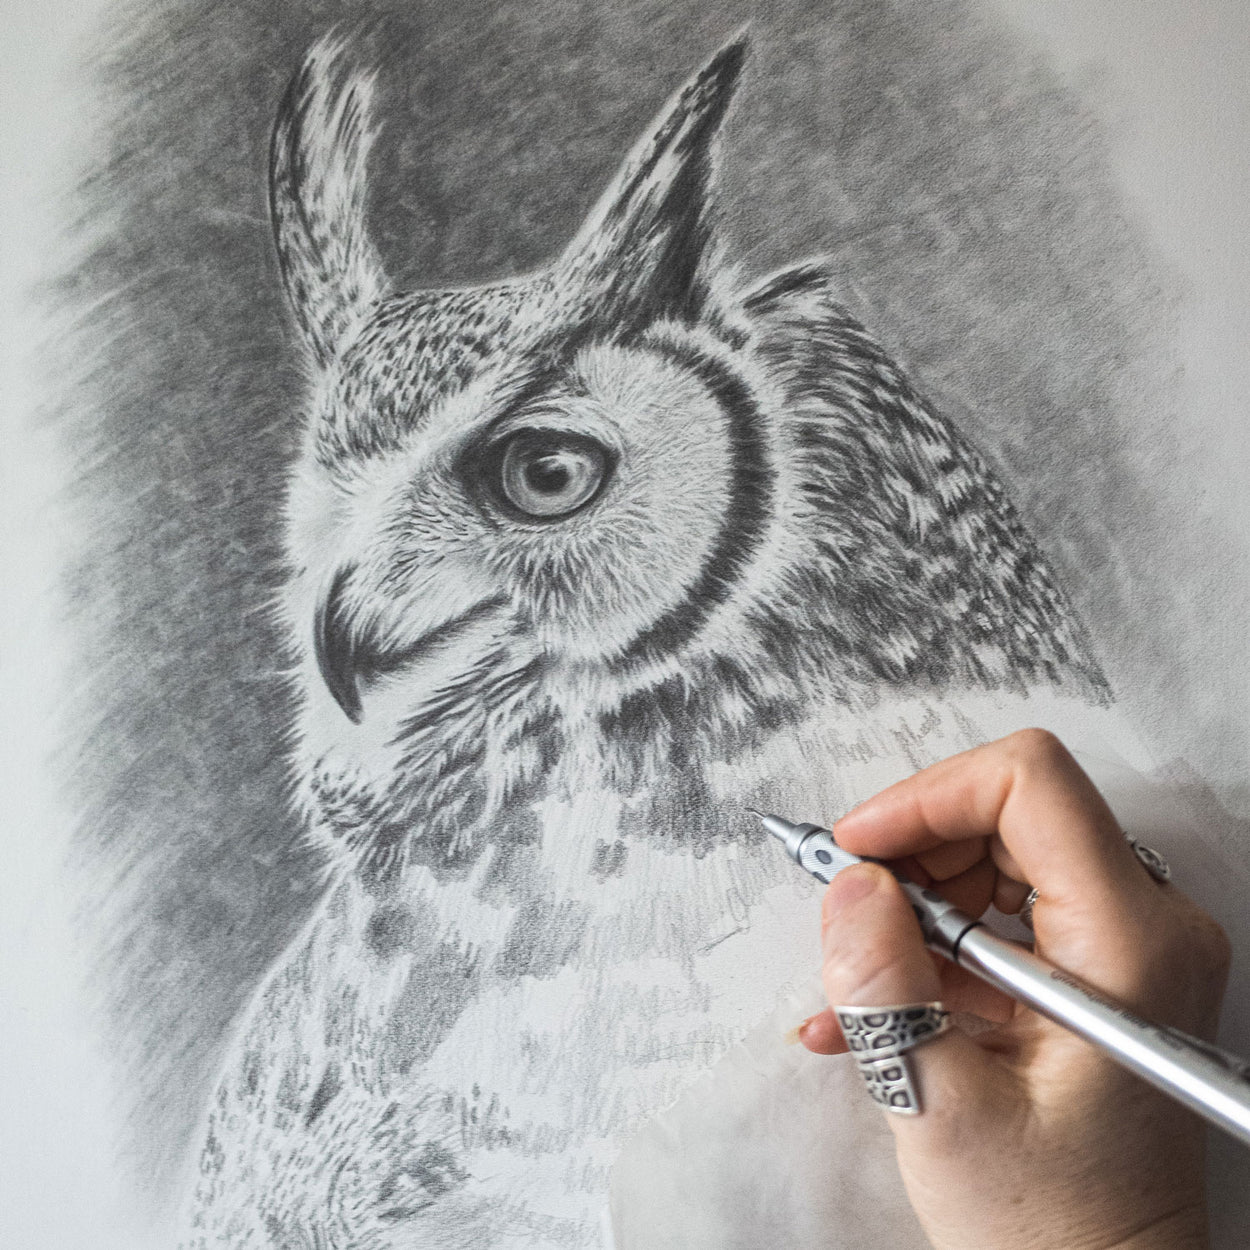 Great Horned Owl Drawing In Progress - The Thriving Wild - Jill Dimond